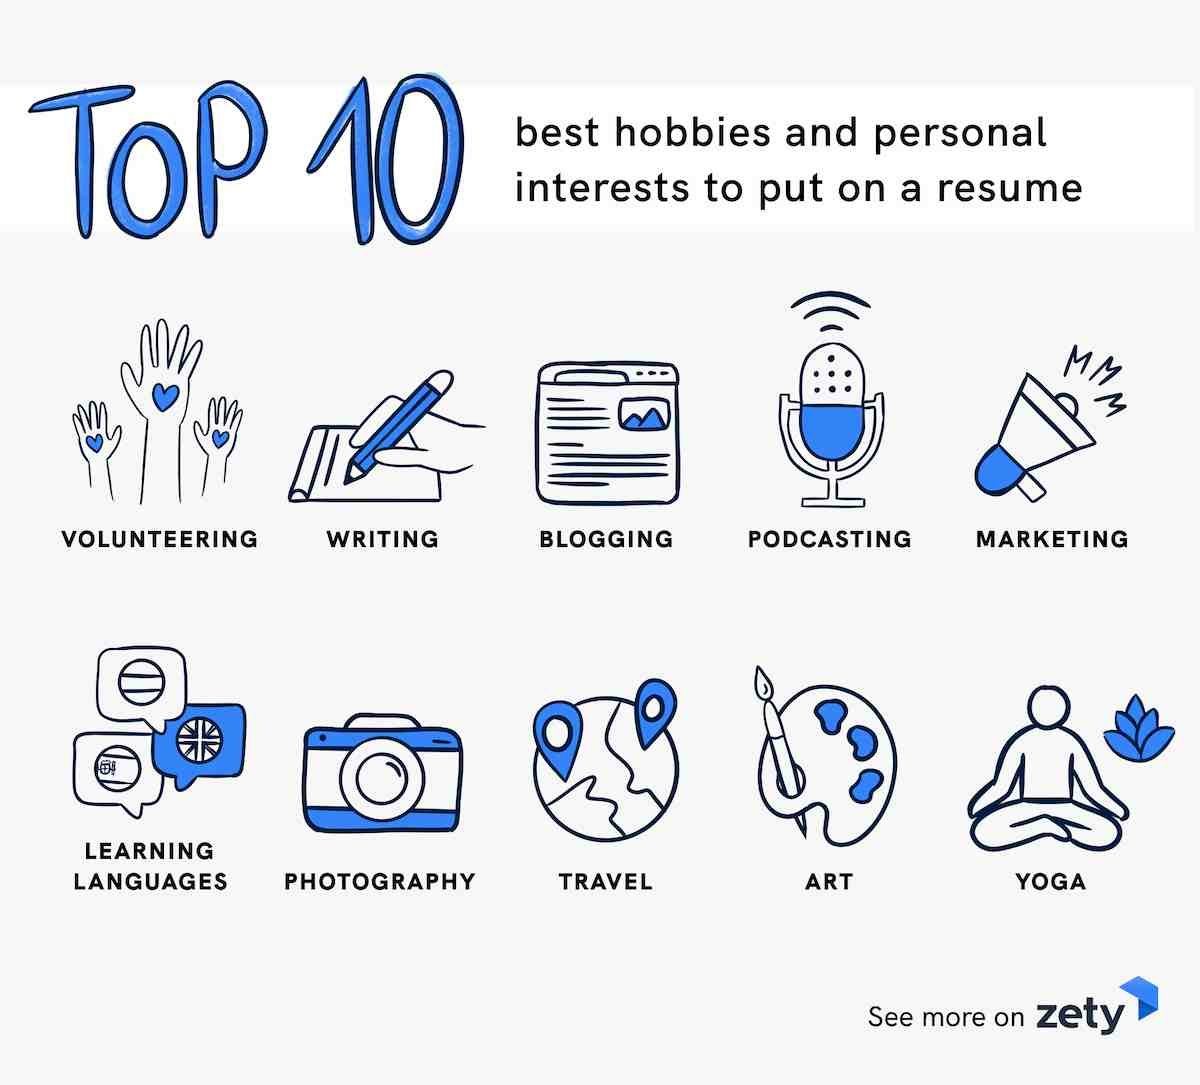 of hobbies and interests for resume cv examples you can put on top best personal to Resume Hobbies You Can Put On A Resume